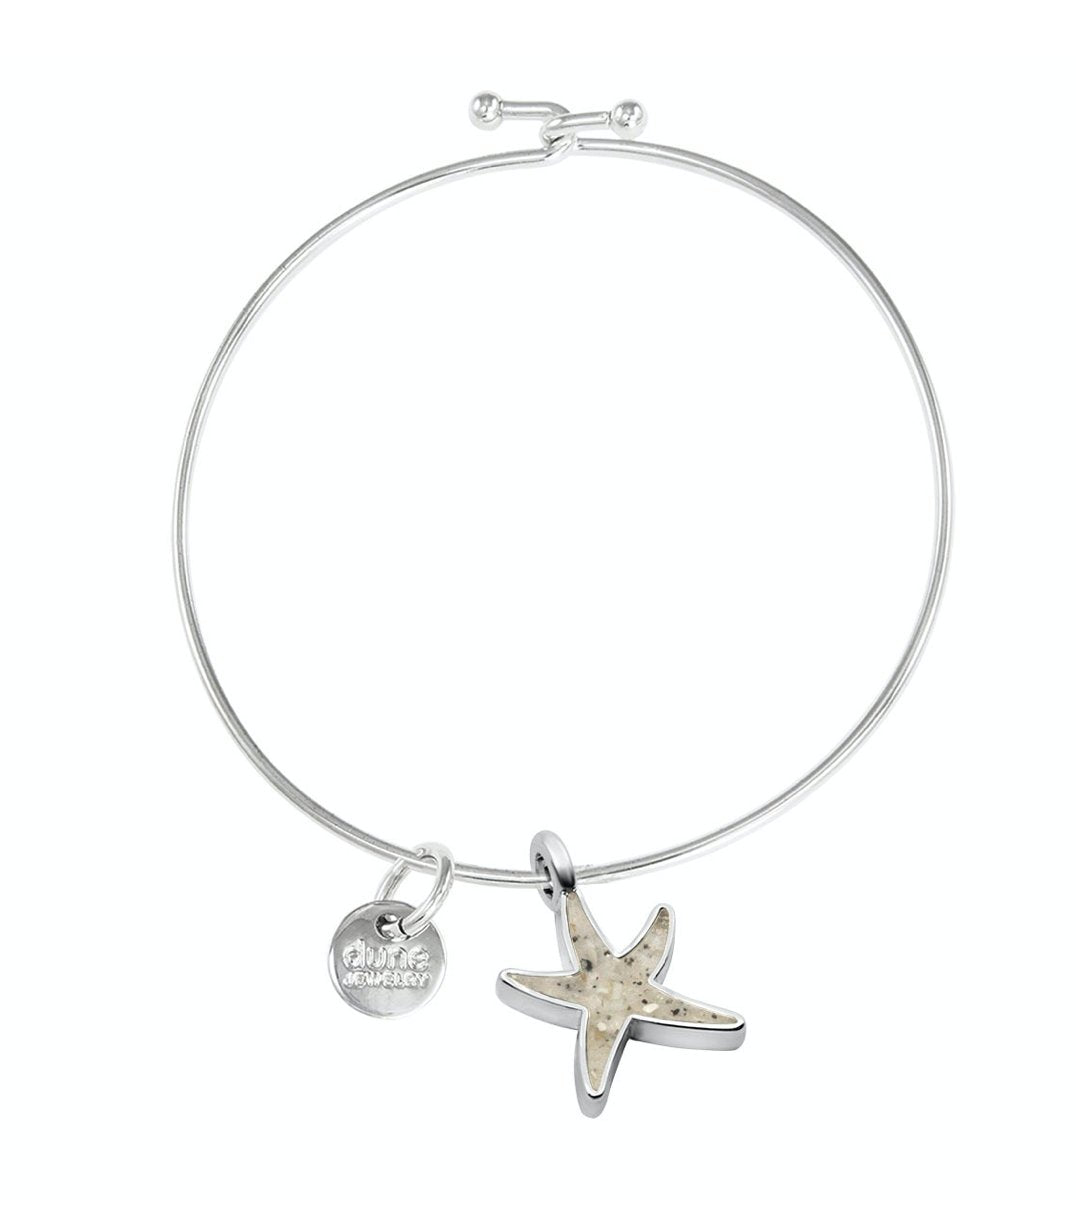 BANG31 BANGLE DELICATE STARFISH - Molly's! A Chic and Unique Boutique